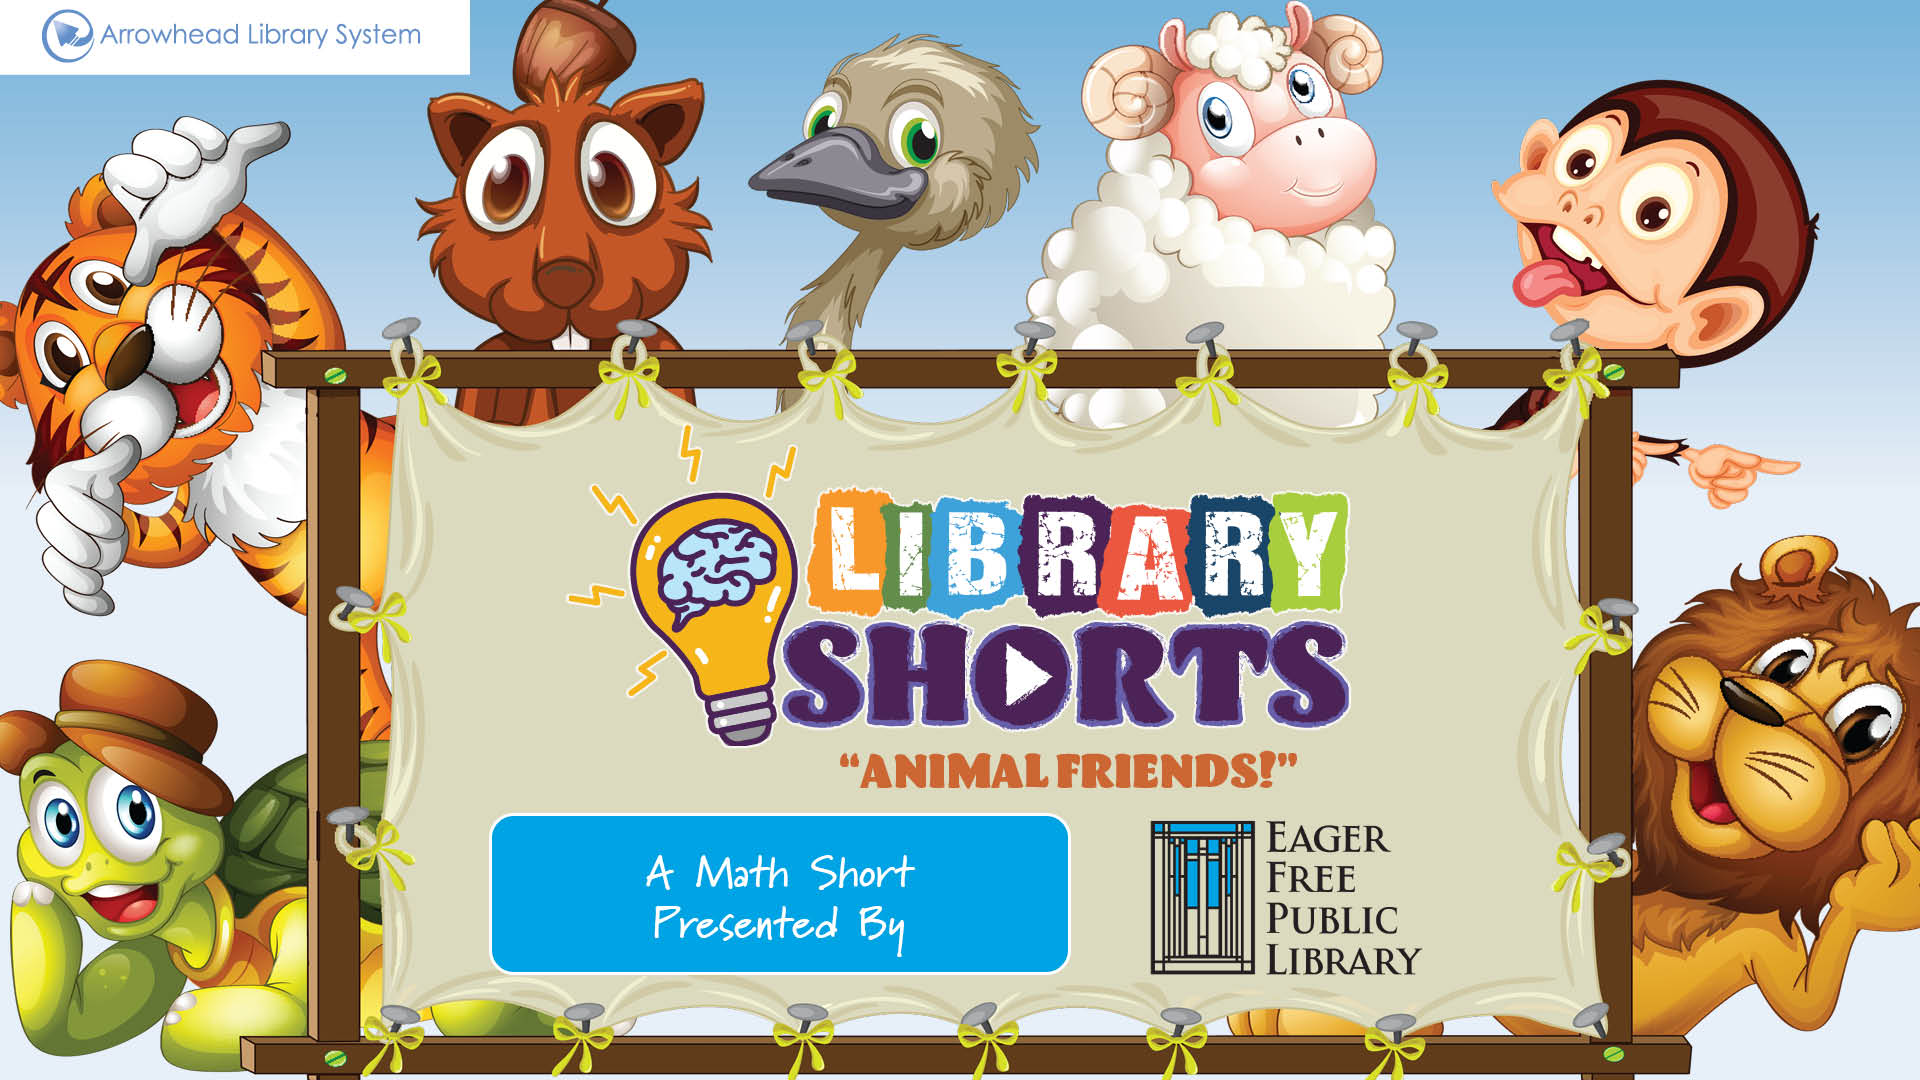 Illustrated animals around a sign featuring the Library Shorts logo.